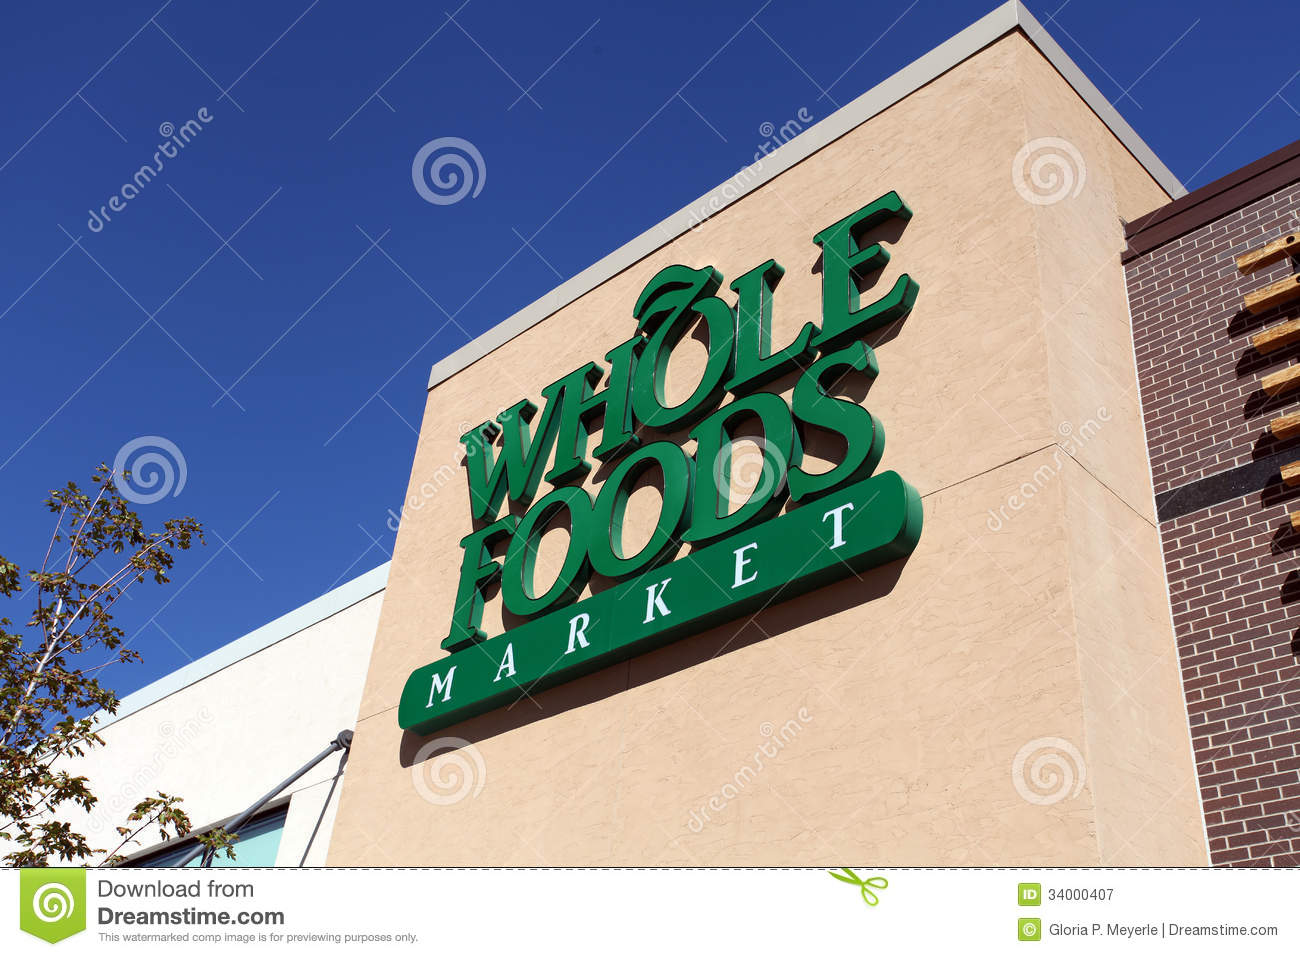 topo_whole-foods-market-sign-denver-co-inc-american-supermarket-chain-headquartered-austin-texas-now